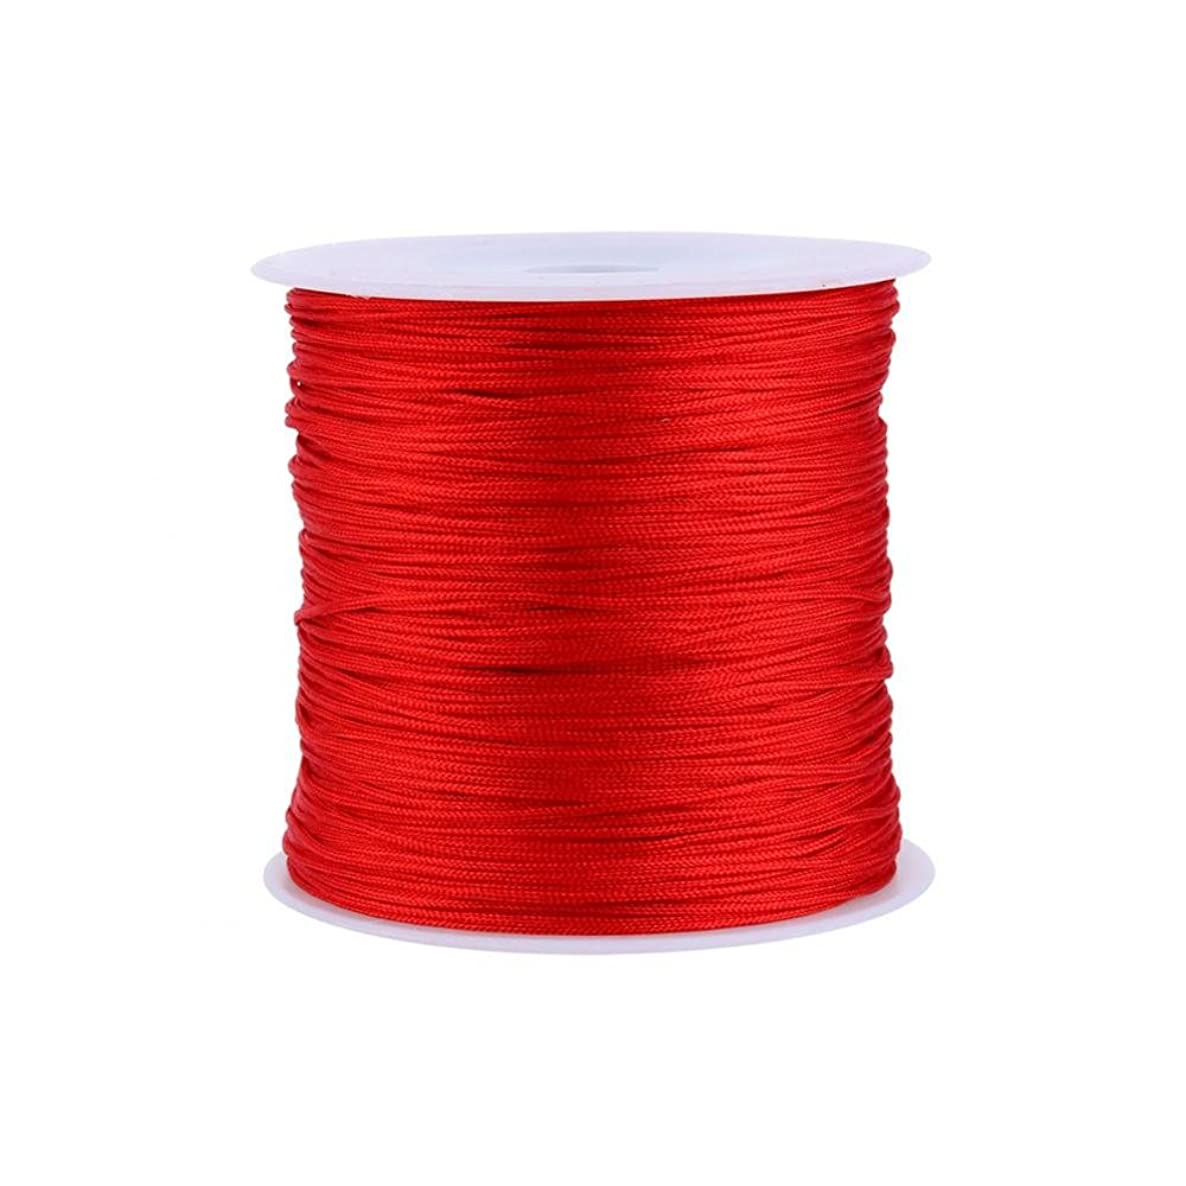 GLOGLOW 20 Colors 100M x 0.8mm Rattail Satin Nylon Trim Cord Chinese Knot for Necklace Bracelet Beading